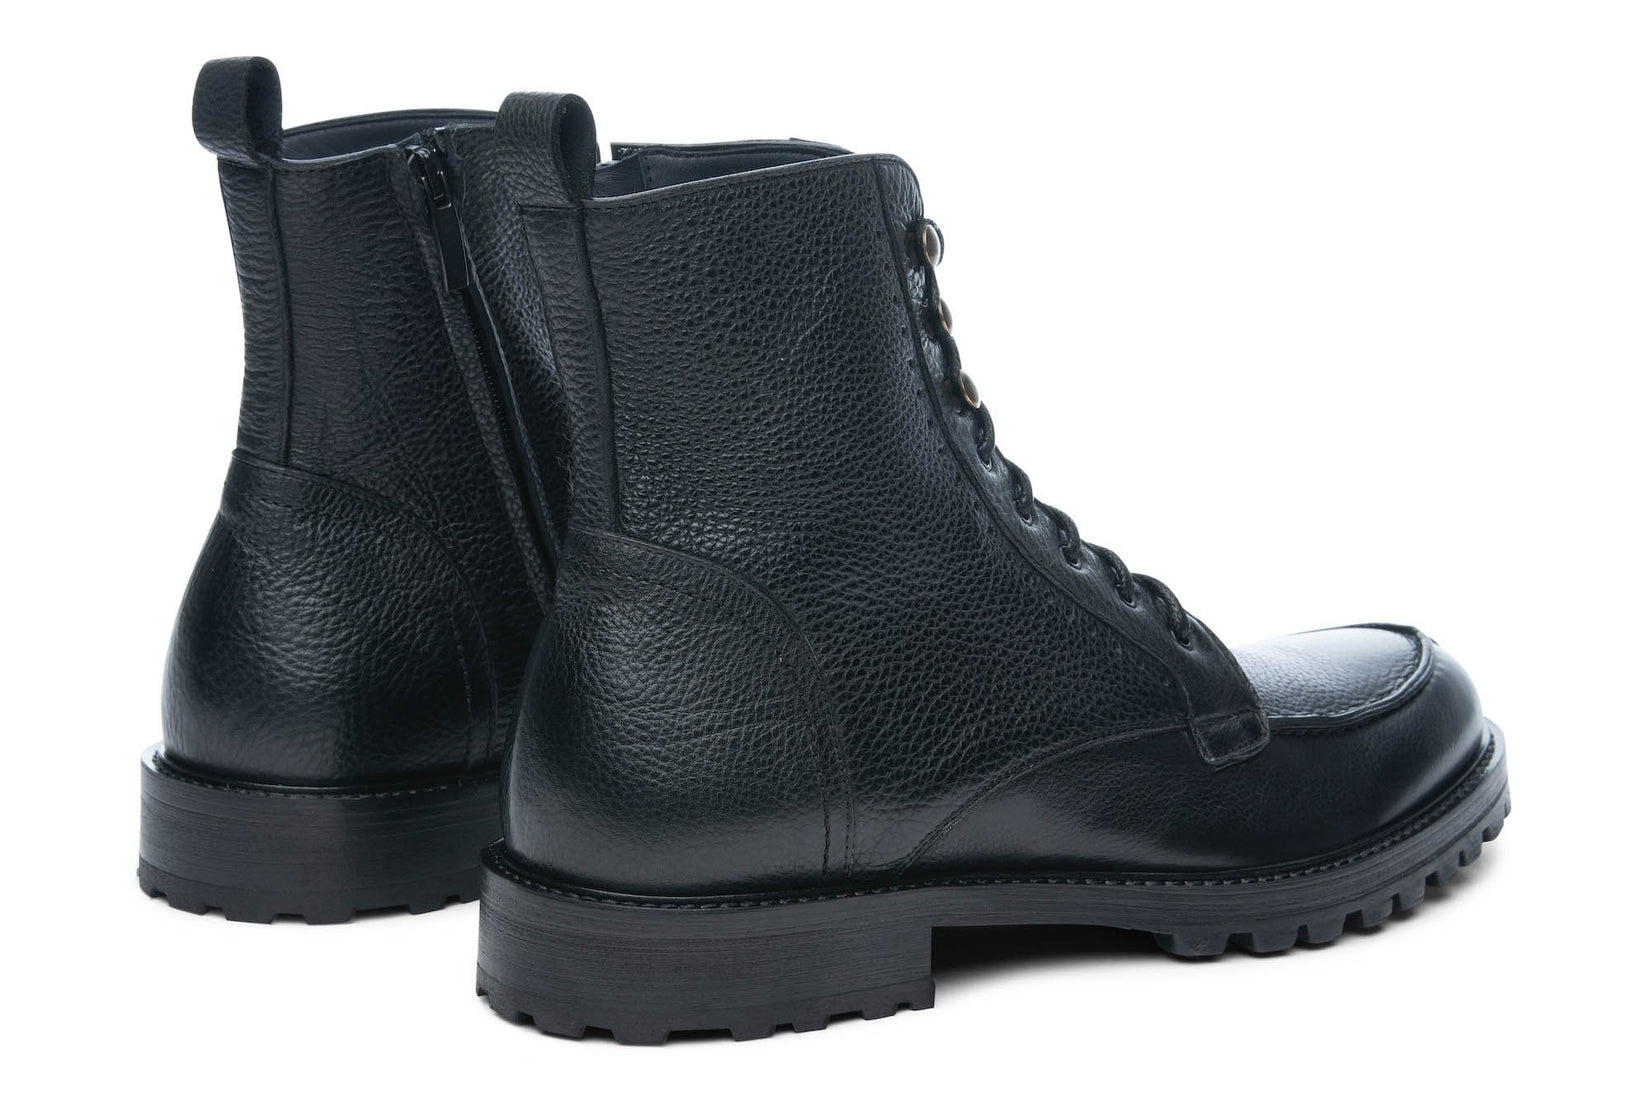 Tuesday Split-Toe Boot in Black